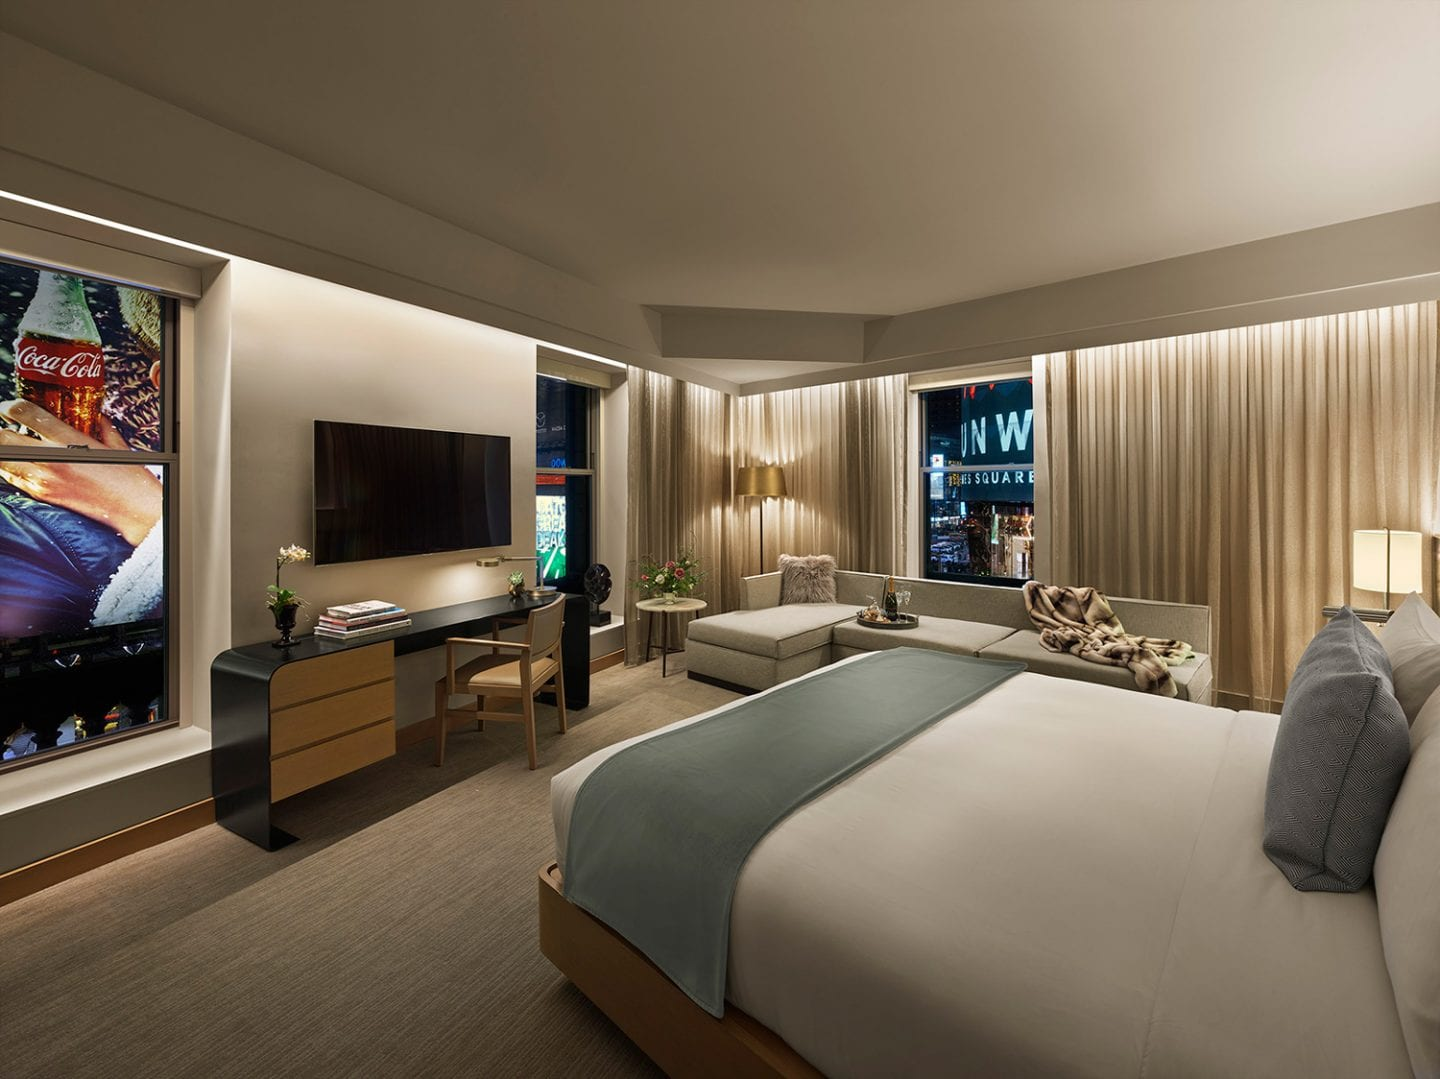 Luxury Times Square Hotel Suites In Nyc The Knickerbocker Hotel